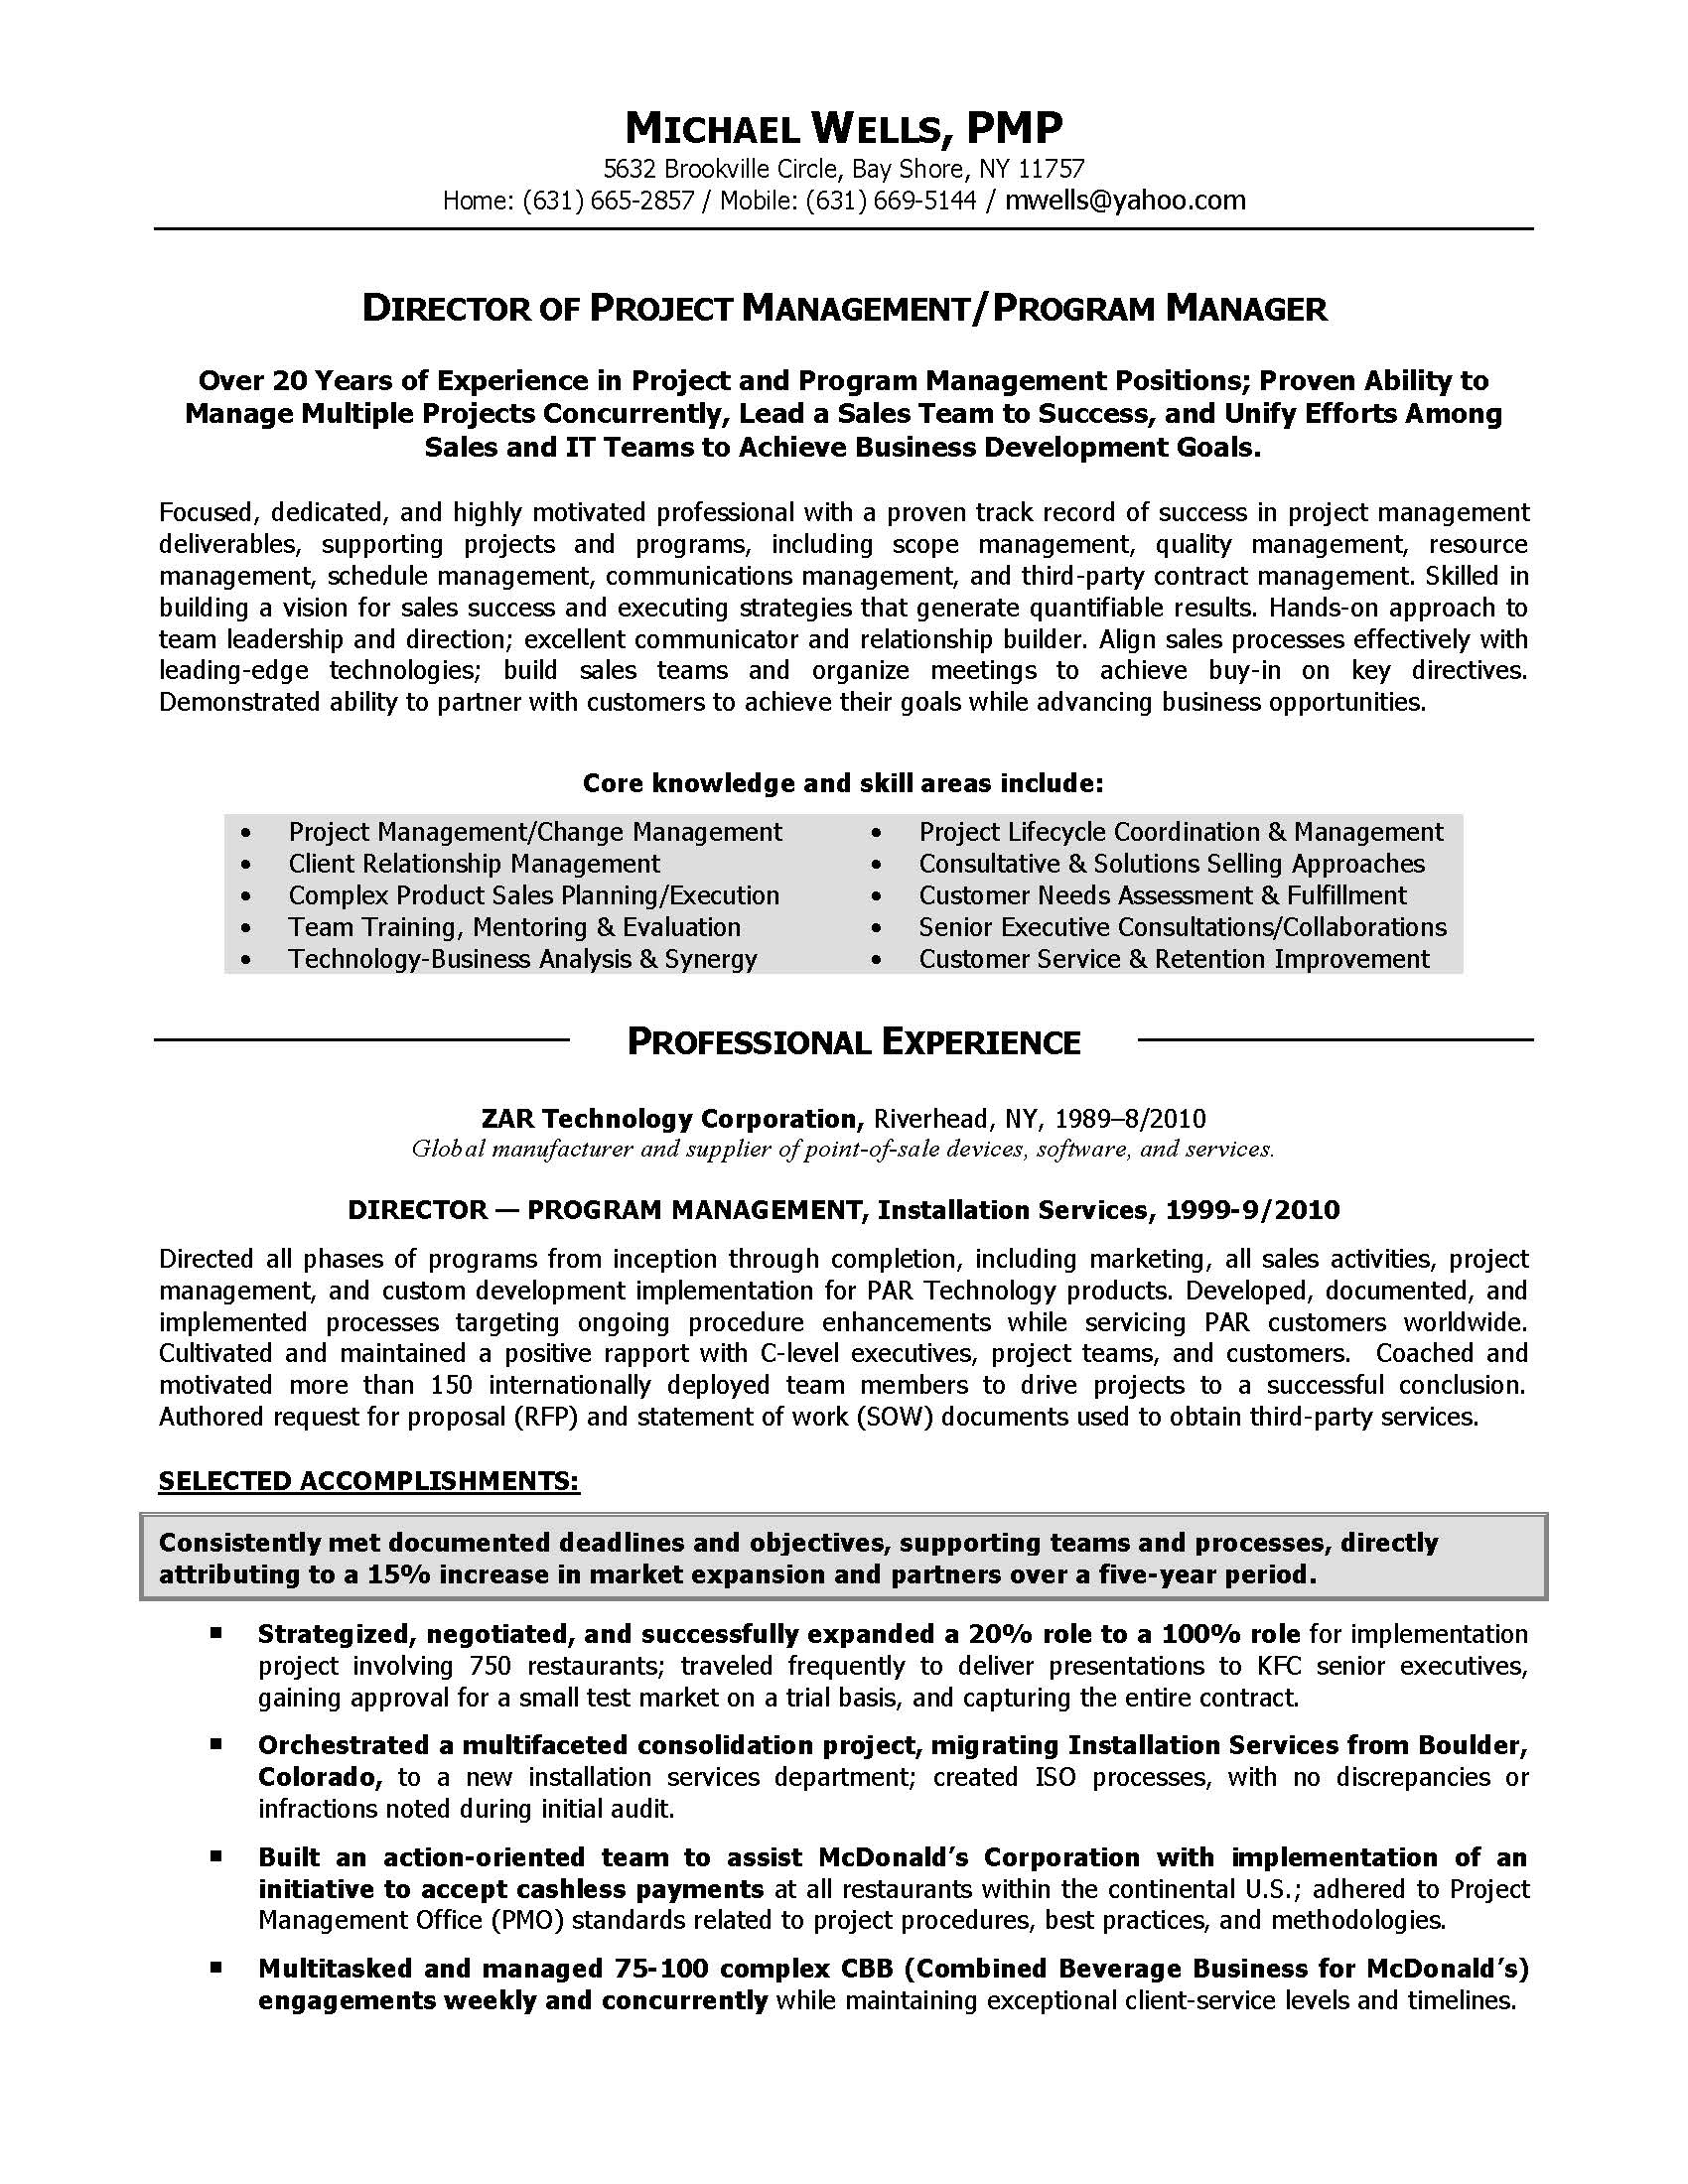 project management director resume sample provided by elite resume writing services - Director Of Information Services Resume